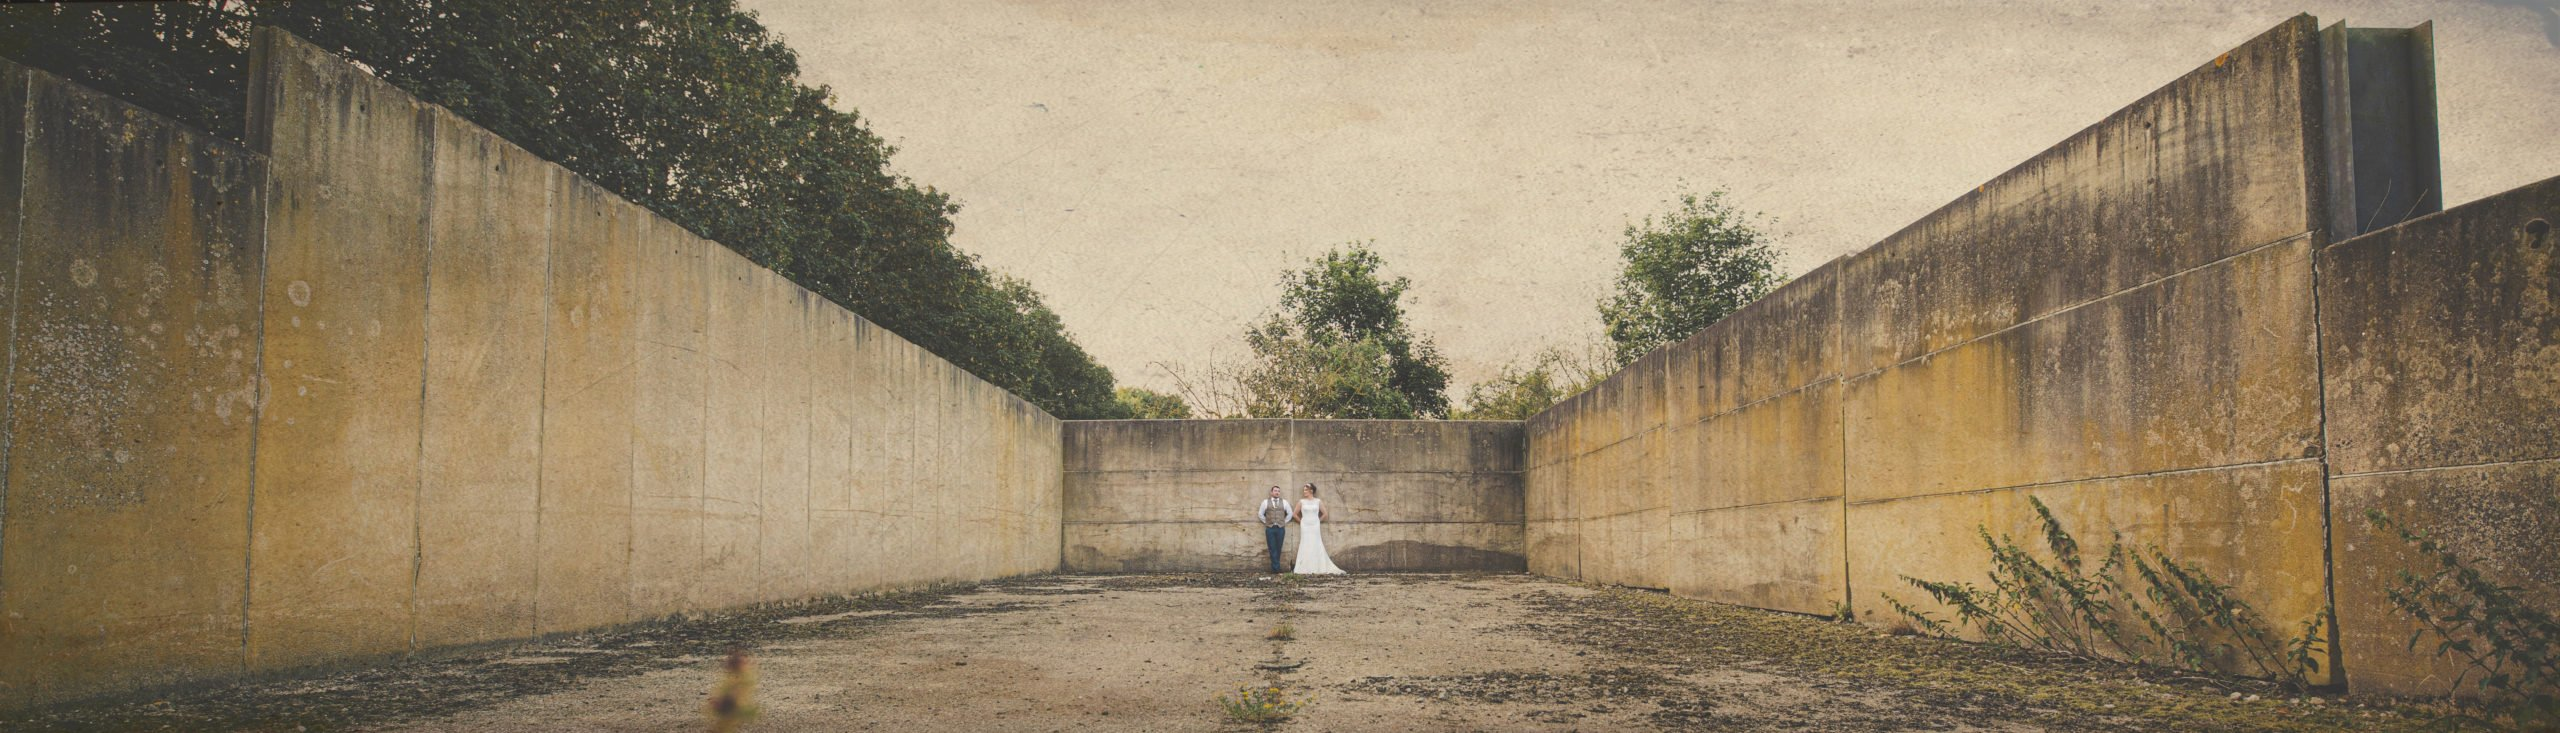 couple standing together in outdoor concrete bunker